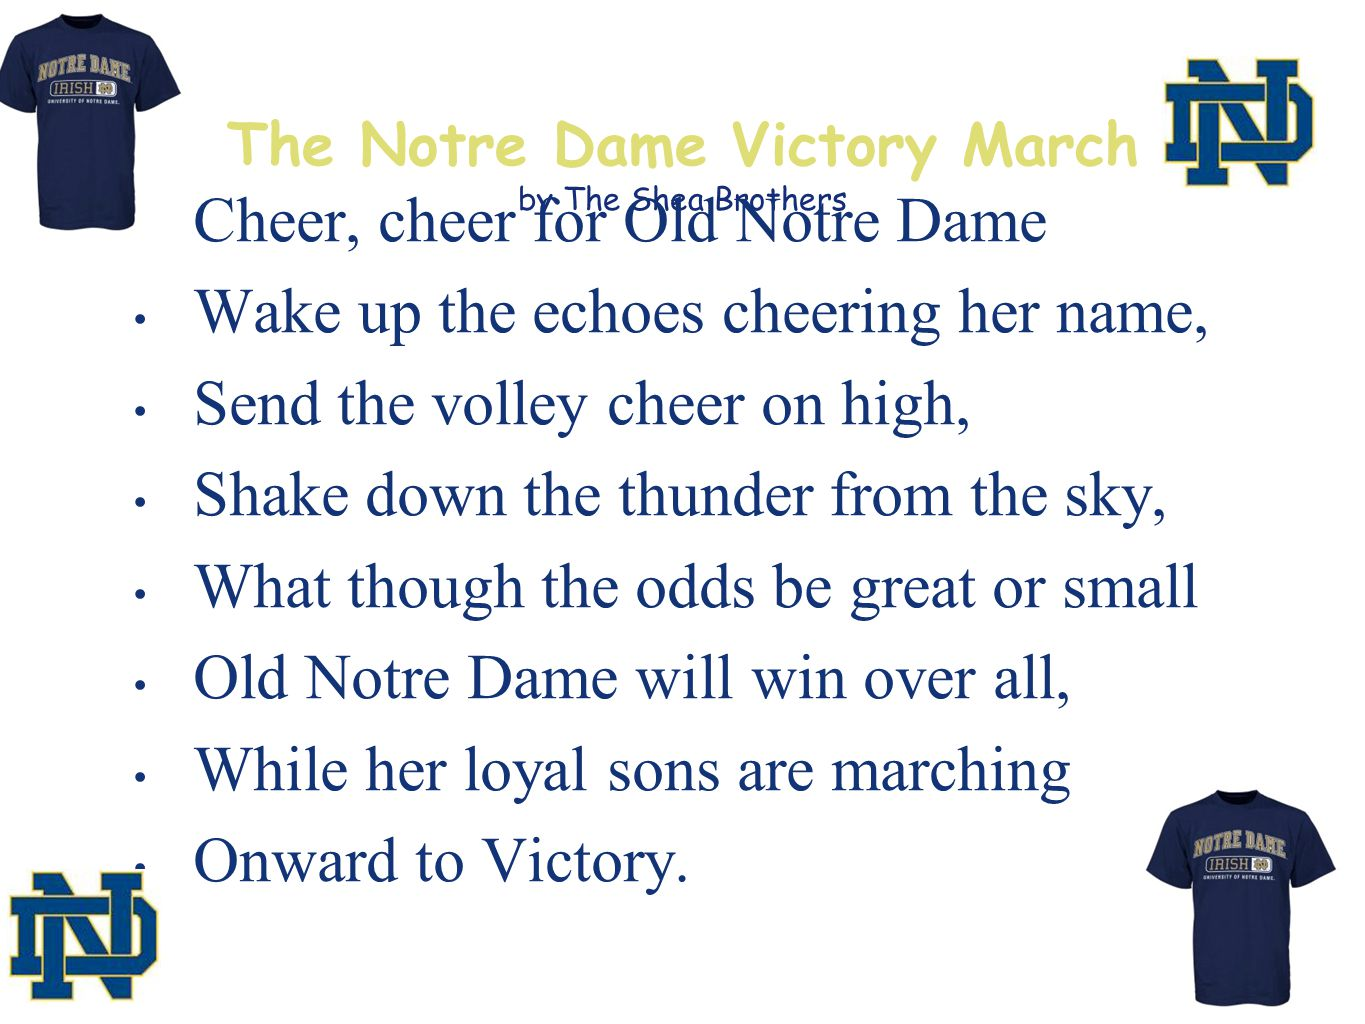 The Notre Dame Victory March by The Shea Brothers Cheer, cheer for Old Notre Dame Wake up the echoes cheering her name, Send the volley cheer on high, Shake down the thunder from the sky, What though the odds be great or small Old Notre Dame will win over all, While her loyal sons are marching Onward to Victory.